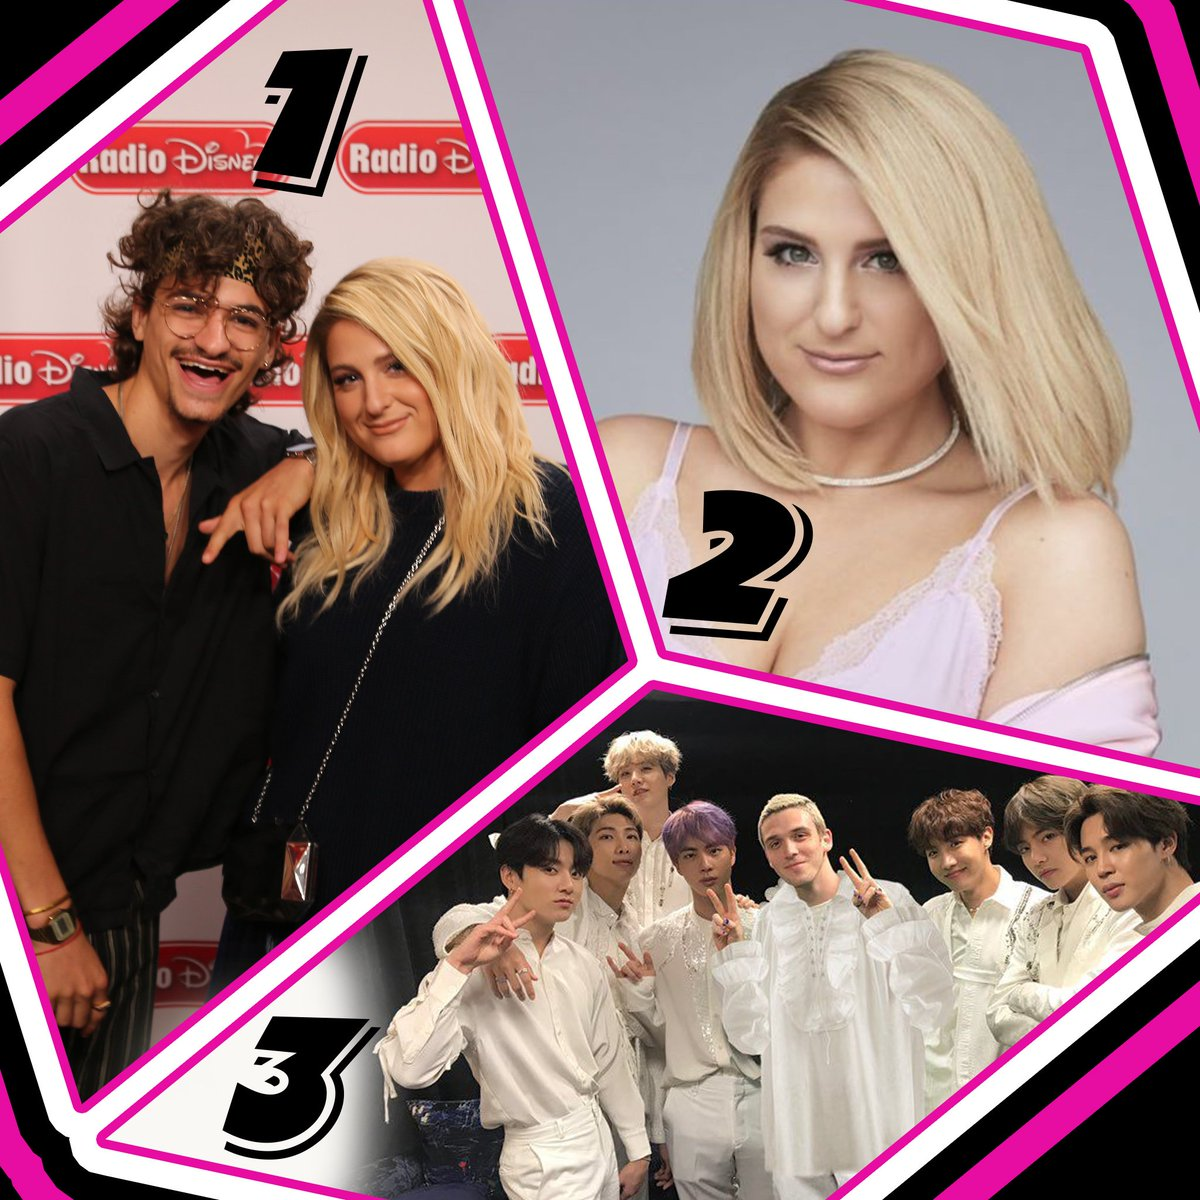 All aboard the M-Train for Monday's #RDTop3!  1. @Meghan_Trainor #Wave (f. @MikeSabathMusic)  2. #MeghanTrainor #Genetics  3. @bts_bighit #MakeItRight (f. @lauvsongs)<br>http://pic.twitter.com/Ls1r3RDTuc